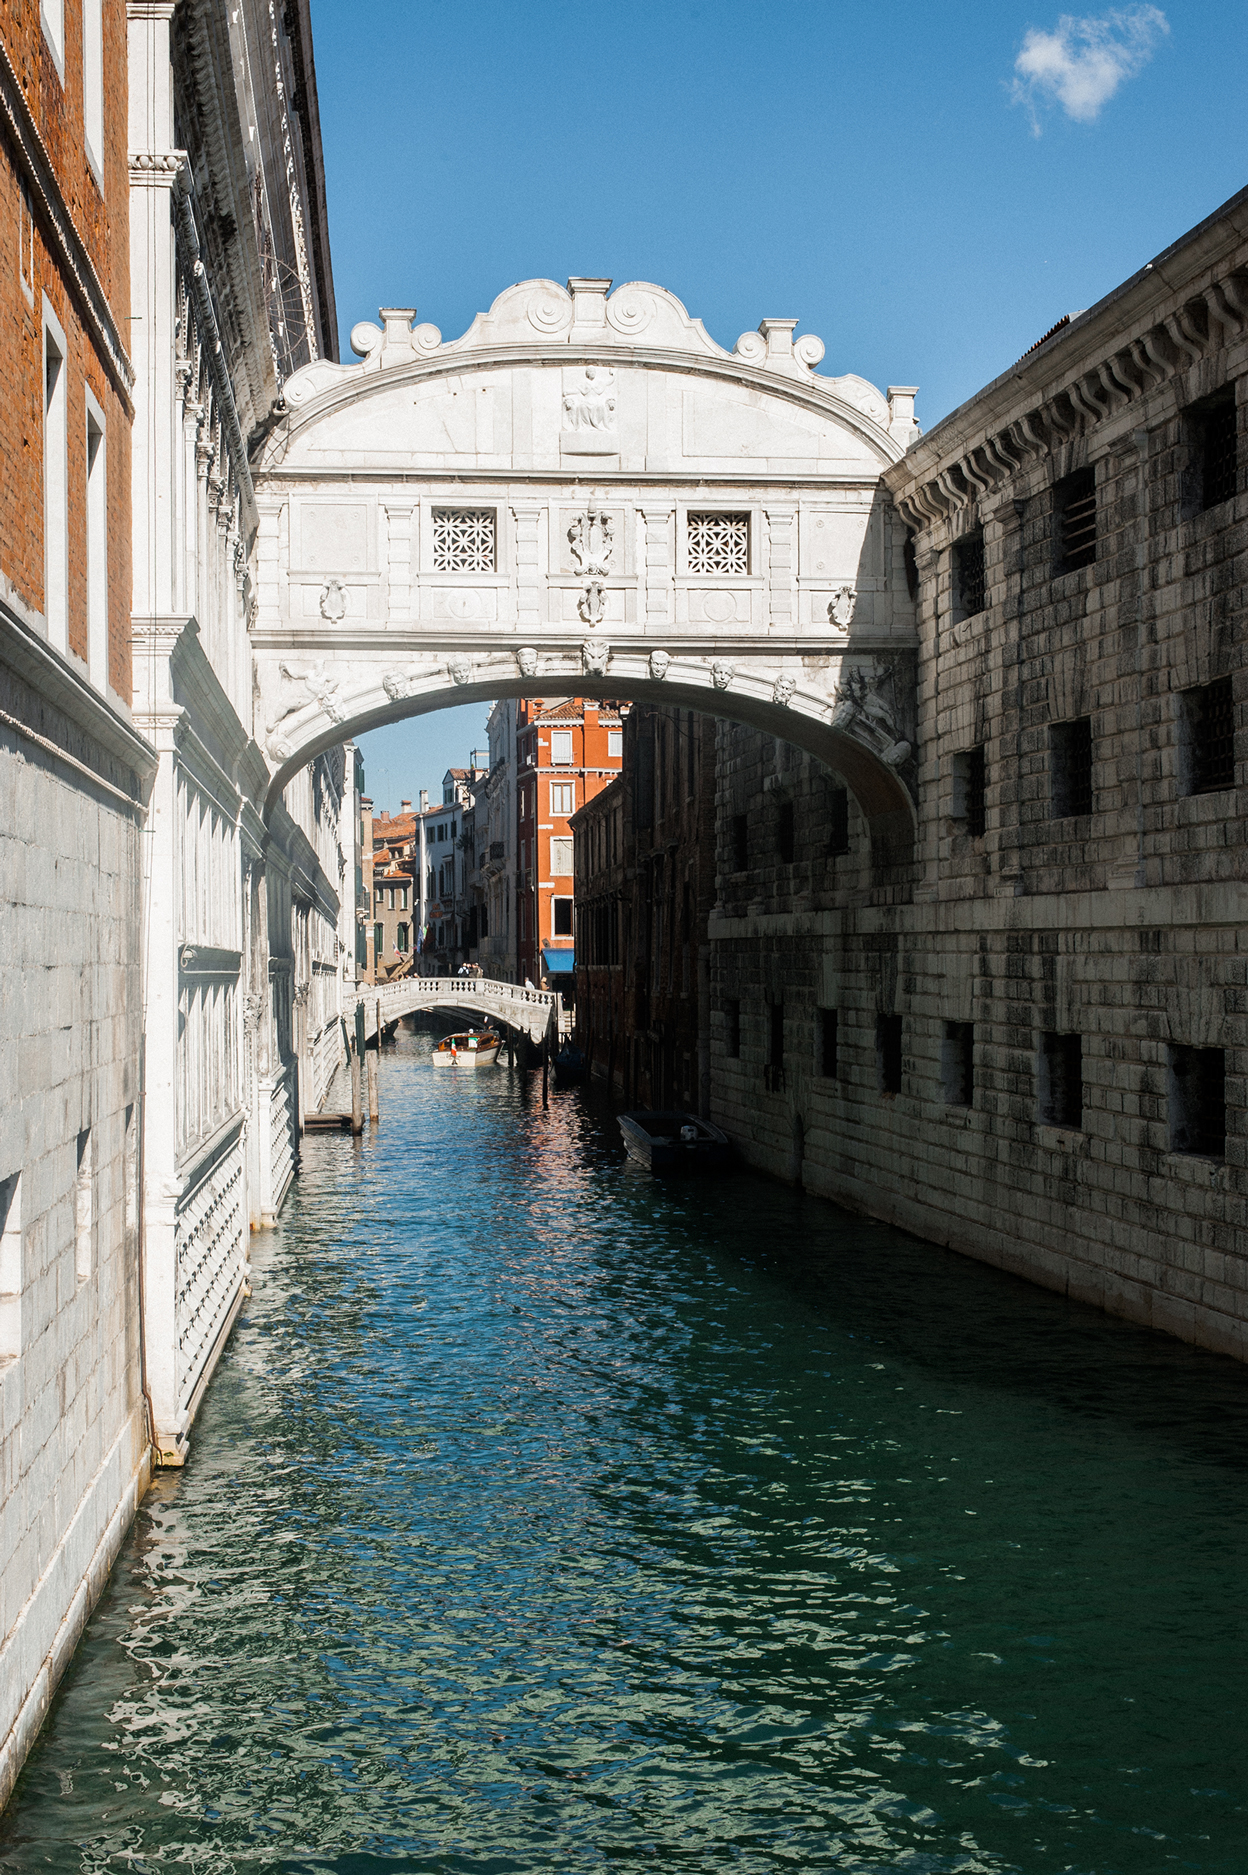 KC_Lifestyle_Photographer_OutdoorPhotography_Adventure_Photography_Venice_Italy05.jpg